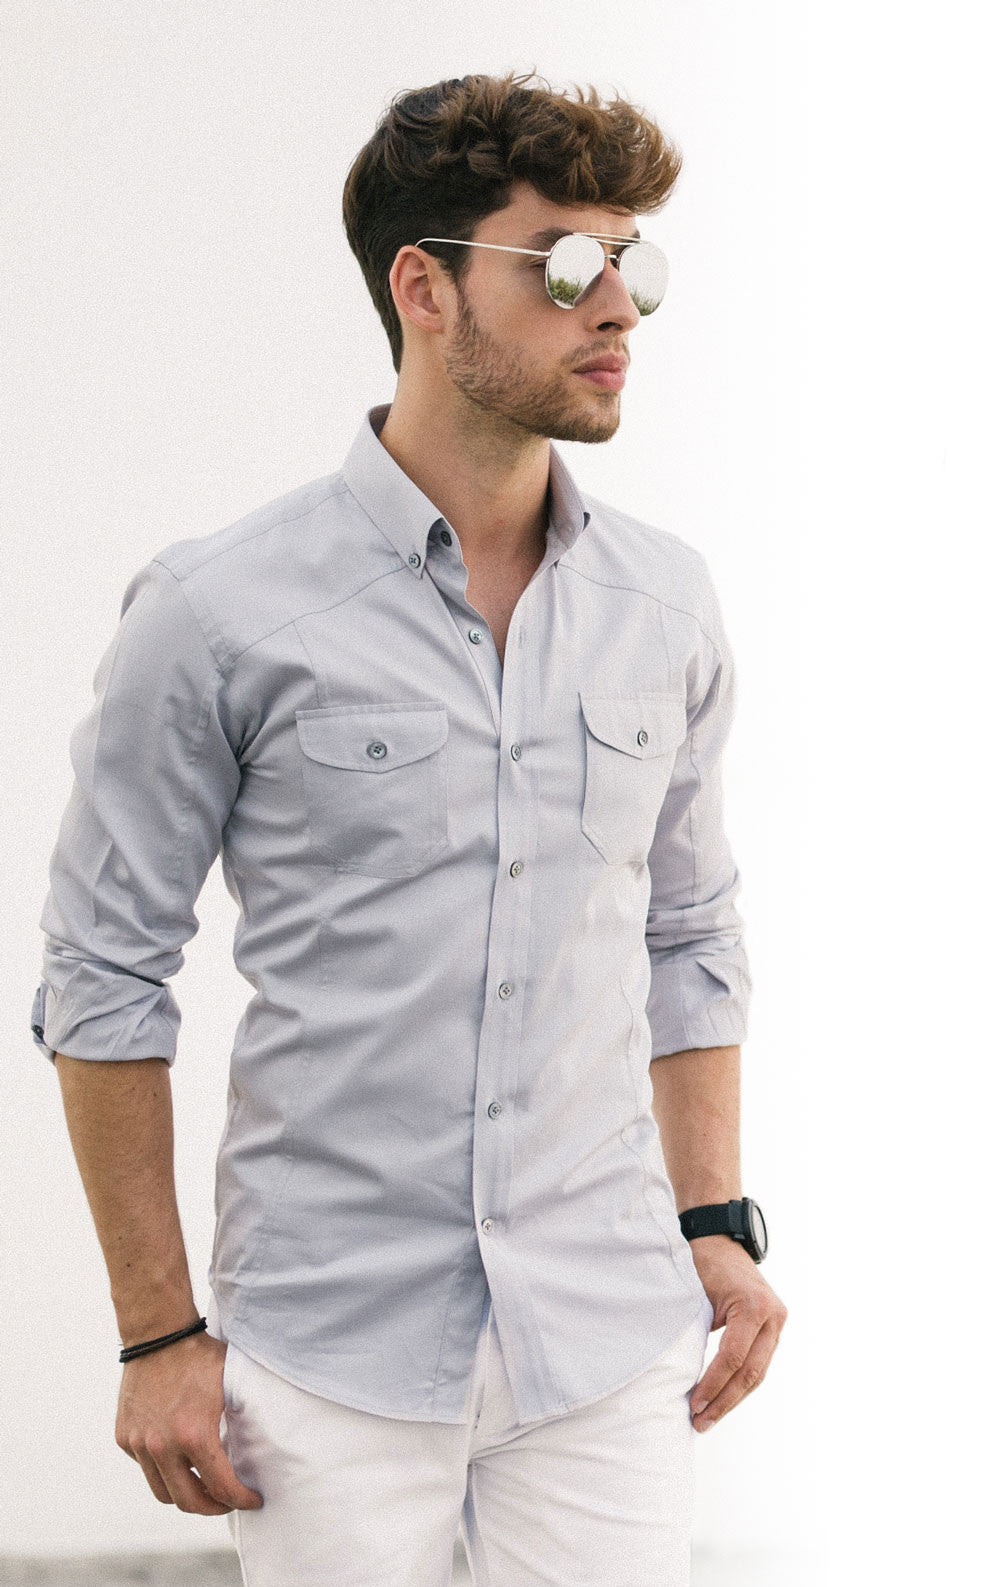 7abb57d8513 Men s Outfit Guide  The fundamentals of great casual outfits